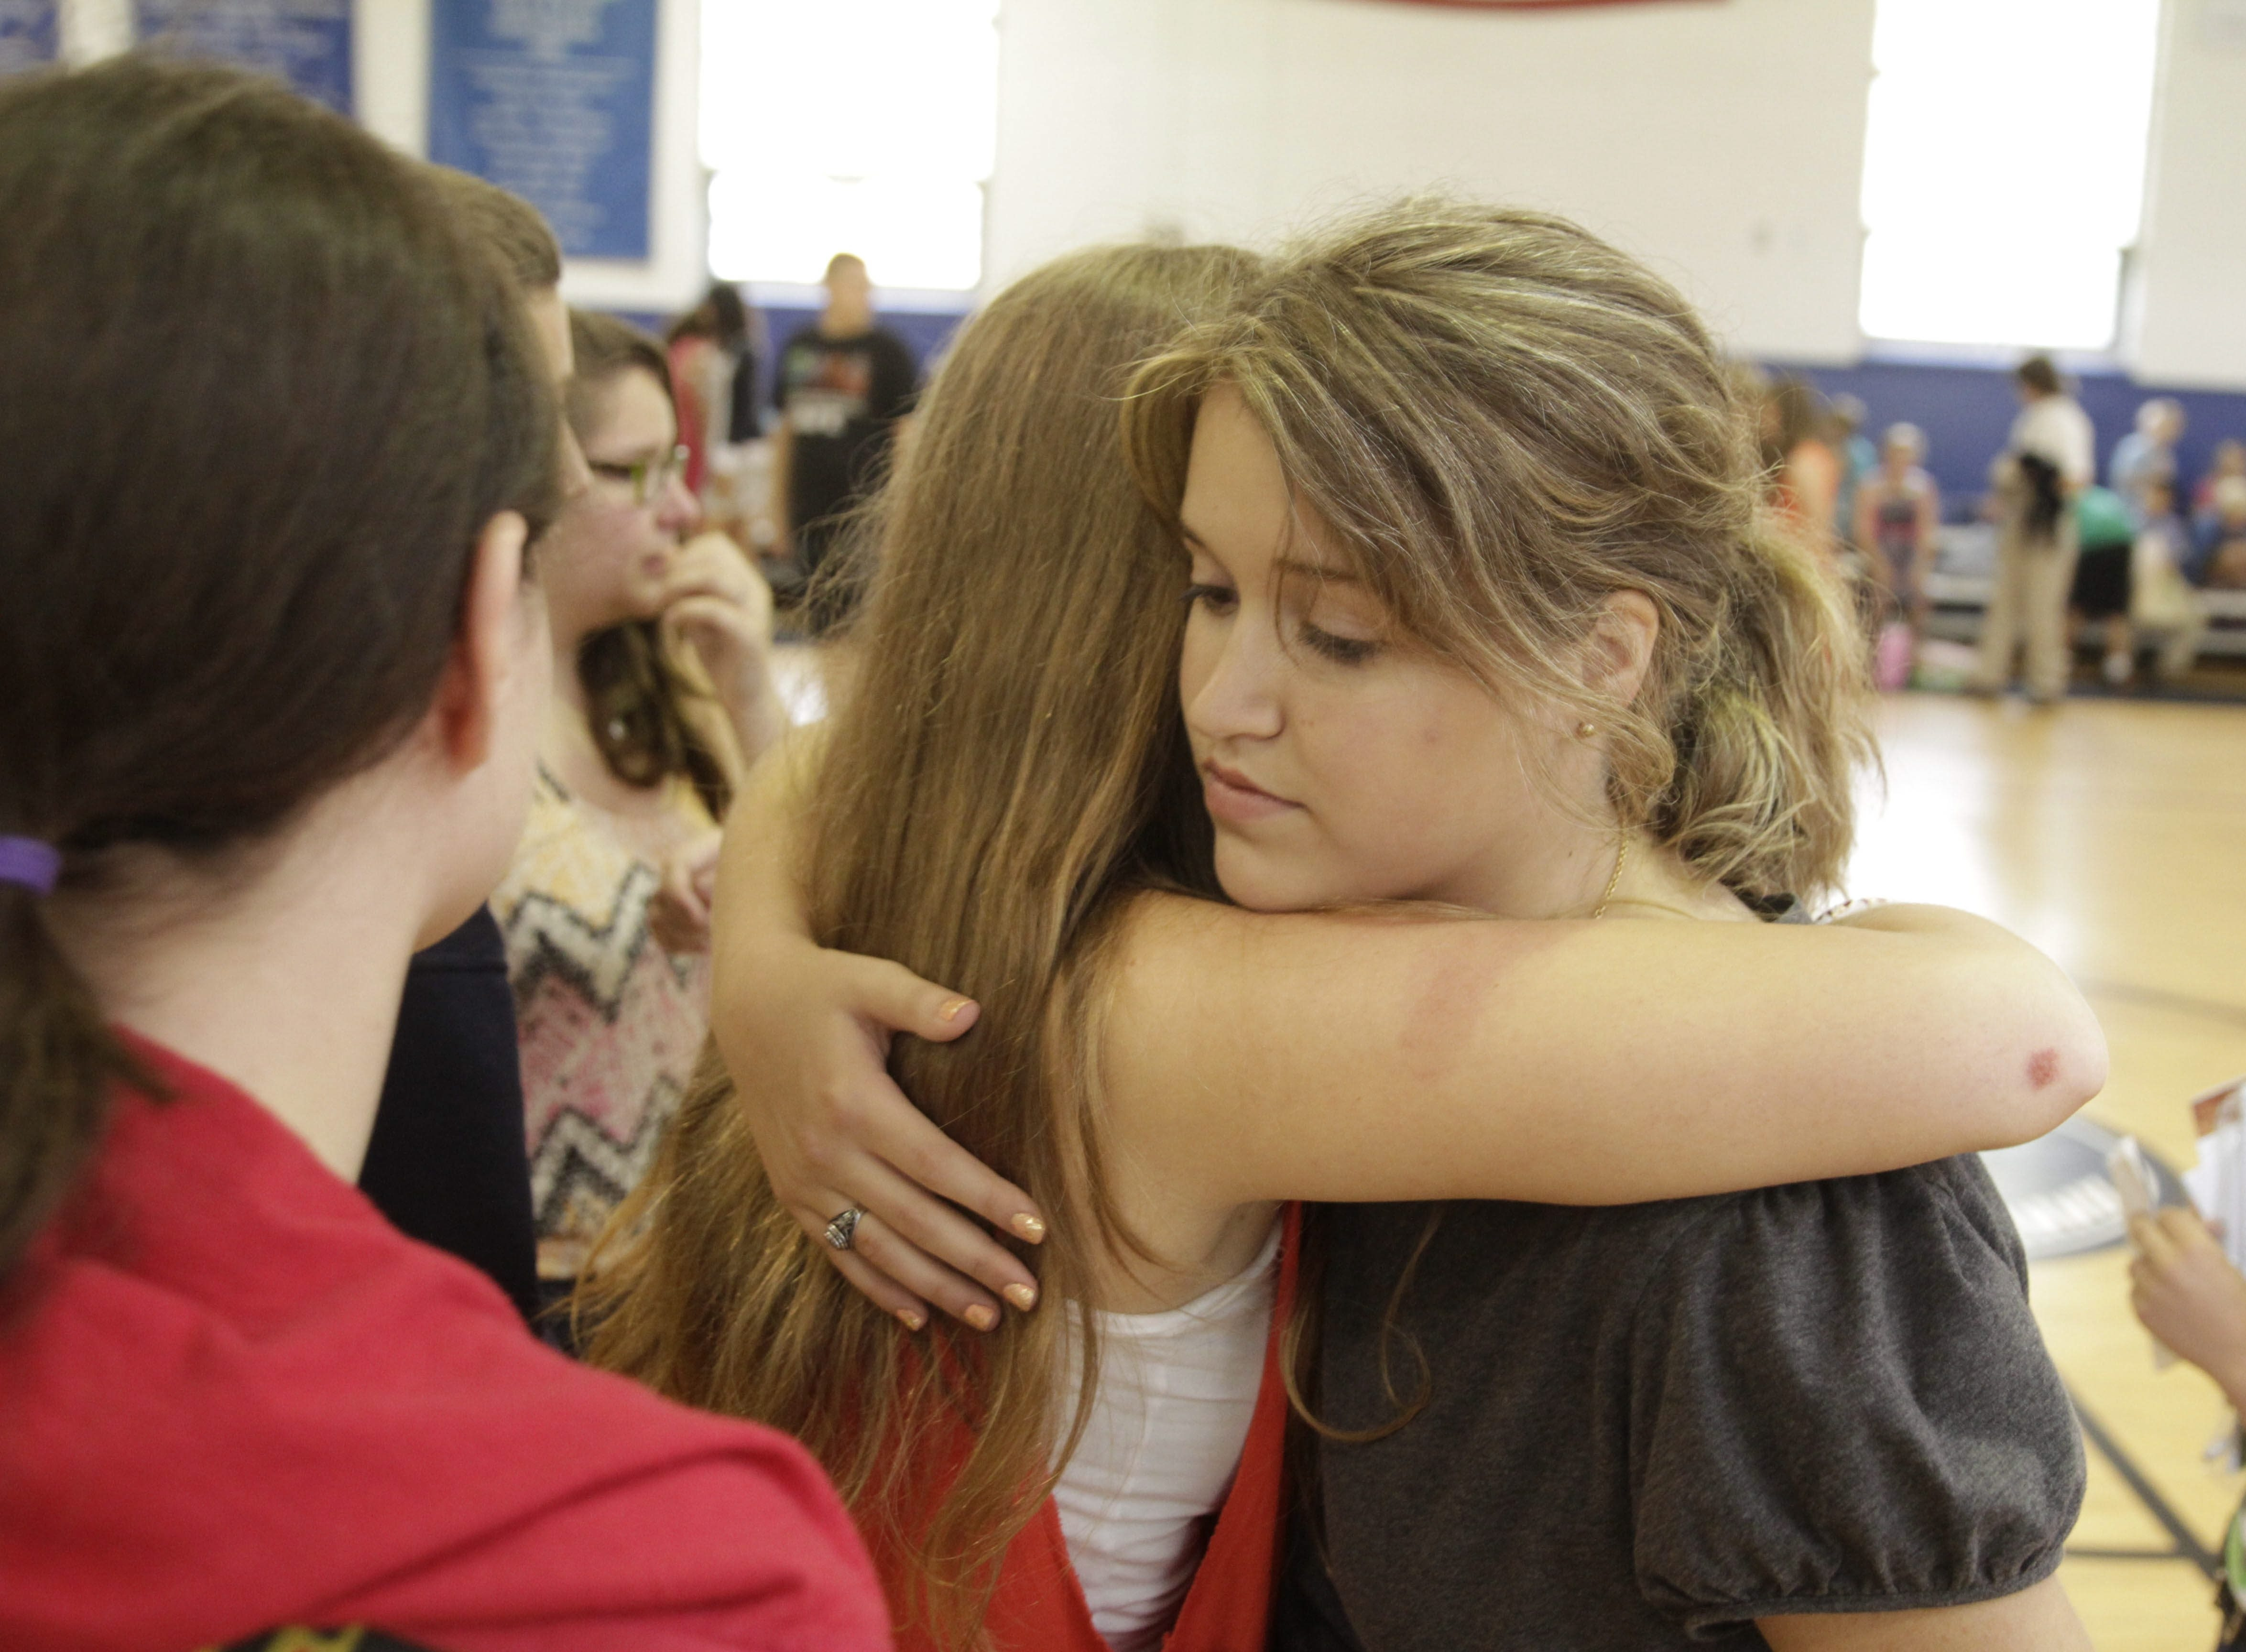 An emotional embrace is one of many at Annunciation School on Wednesday, as students, parents, faculty and staff gather to say goodbye, a scene similar to those at nine other schools being closed by the Diocese of Buffalo.